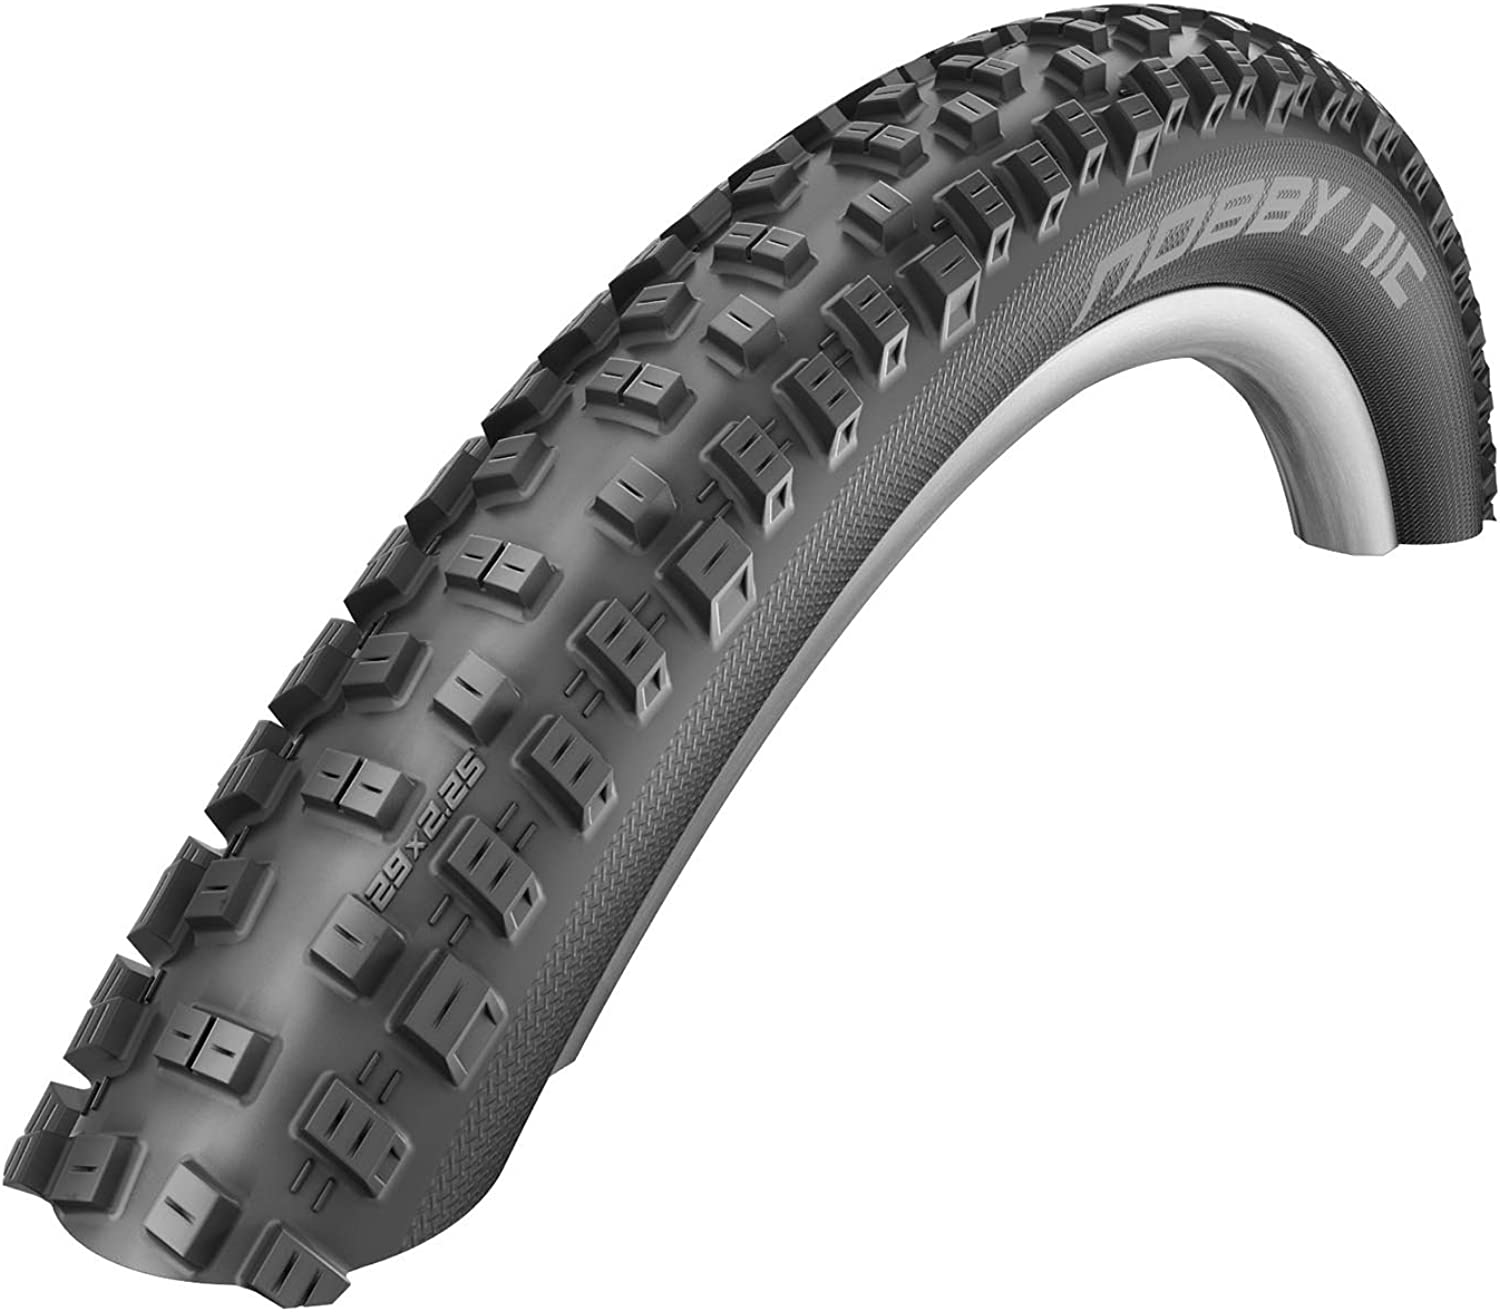 SCHWALBE Nobby Nic SS TL Folding Tire, 29-Inch